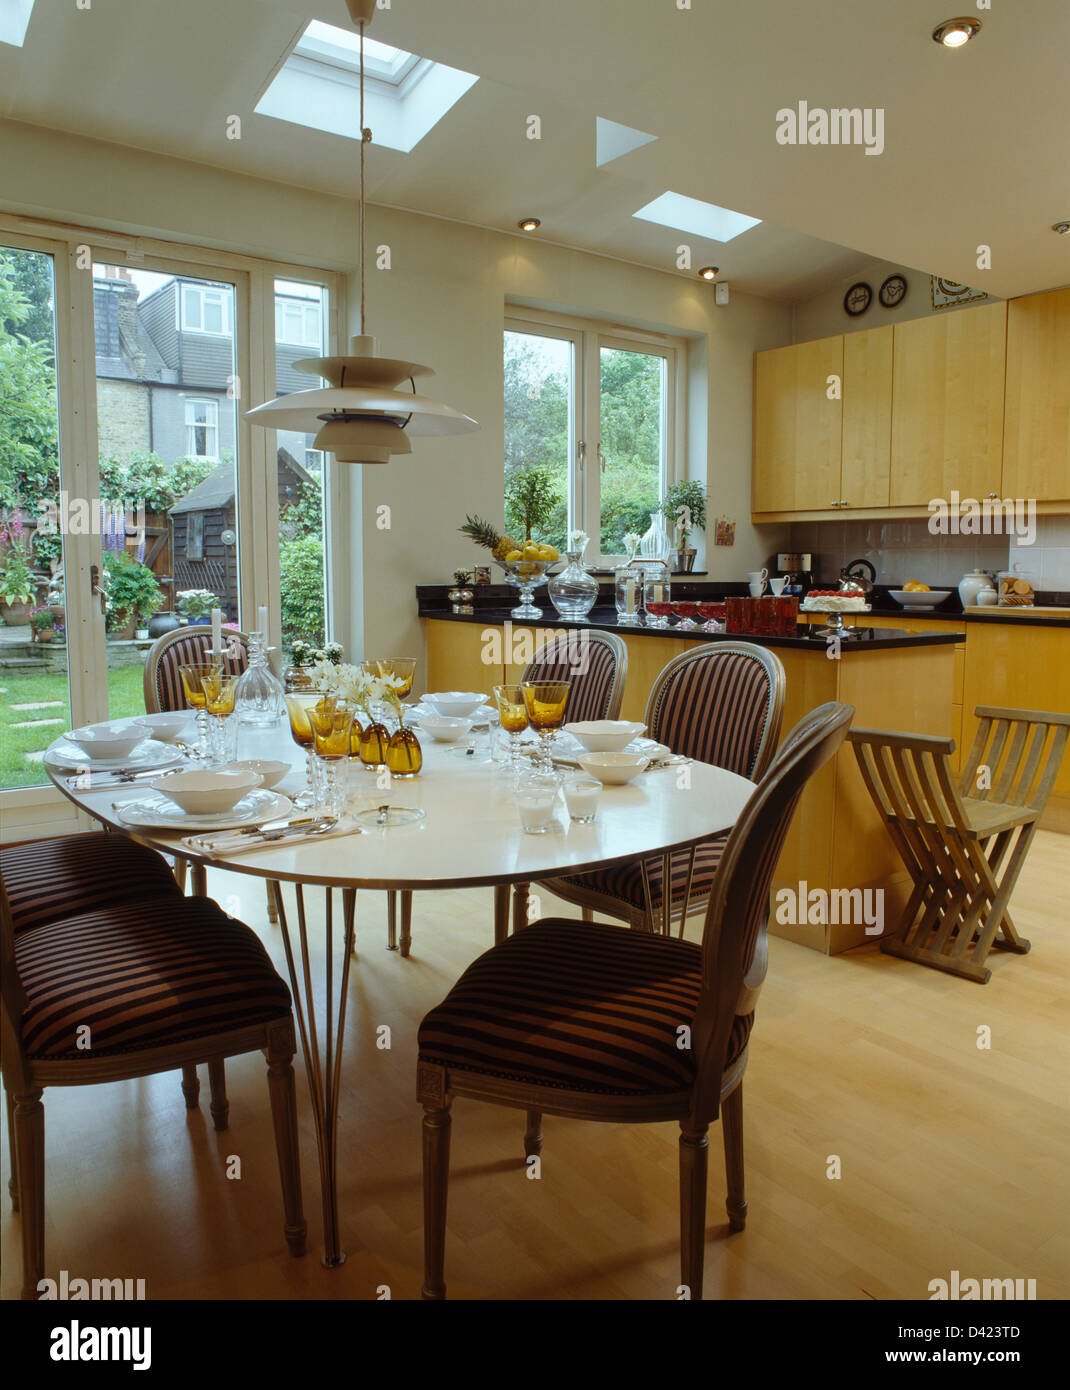 Stock Photo   Striped Upholstered Chairs At Oval White Table Set For Lunch  In Modern Kitchen Dining Room Extension With Wooden Flooring